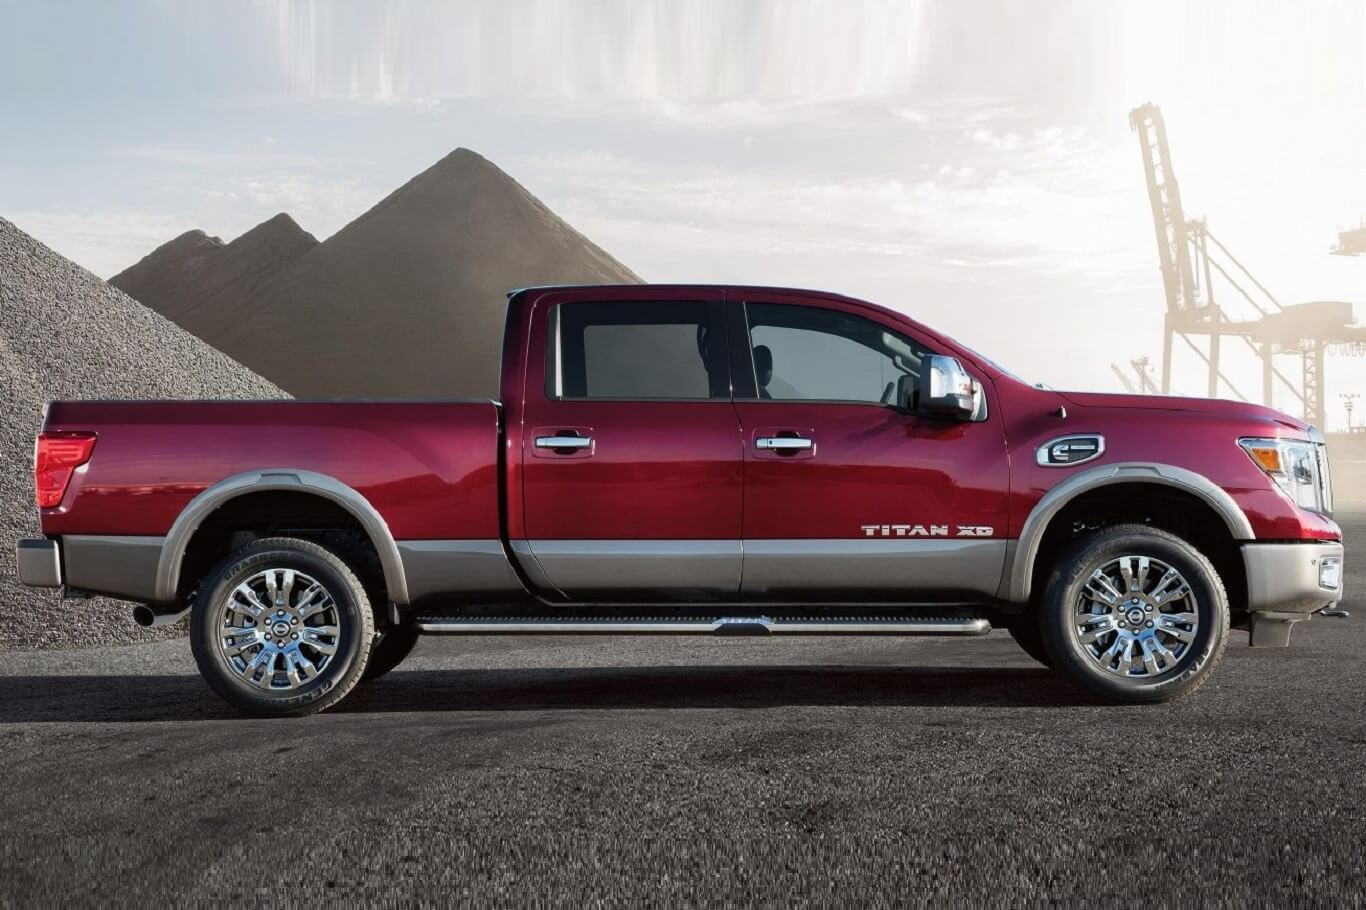 How is a crew cab different from a regular cab